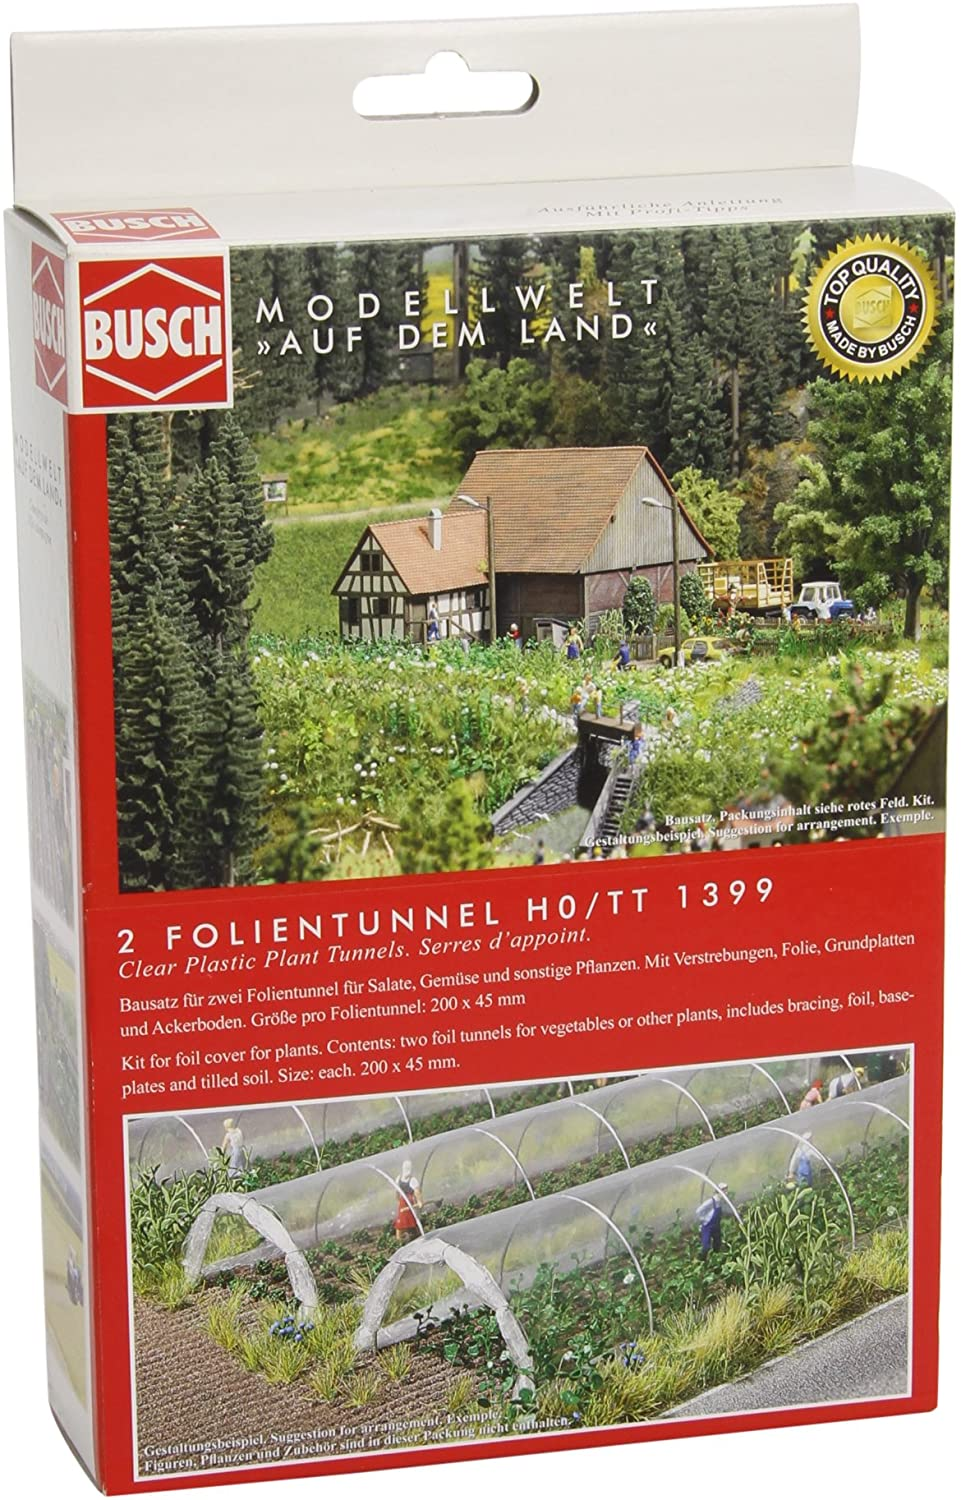 Busch 1399 Foil Cover for Plants HO Scenery Scale Model Scenery